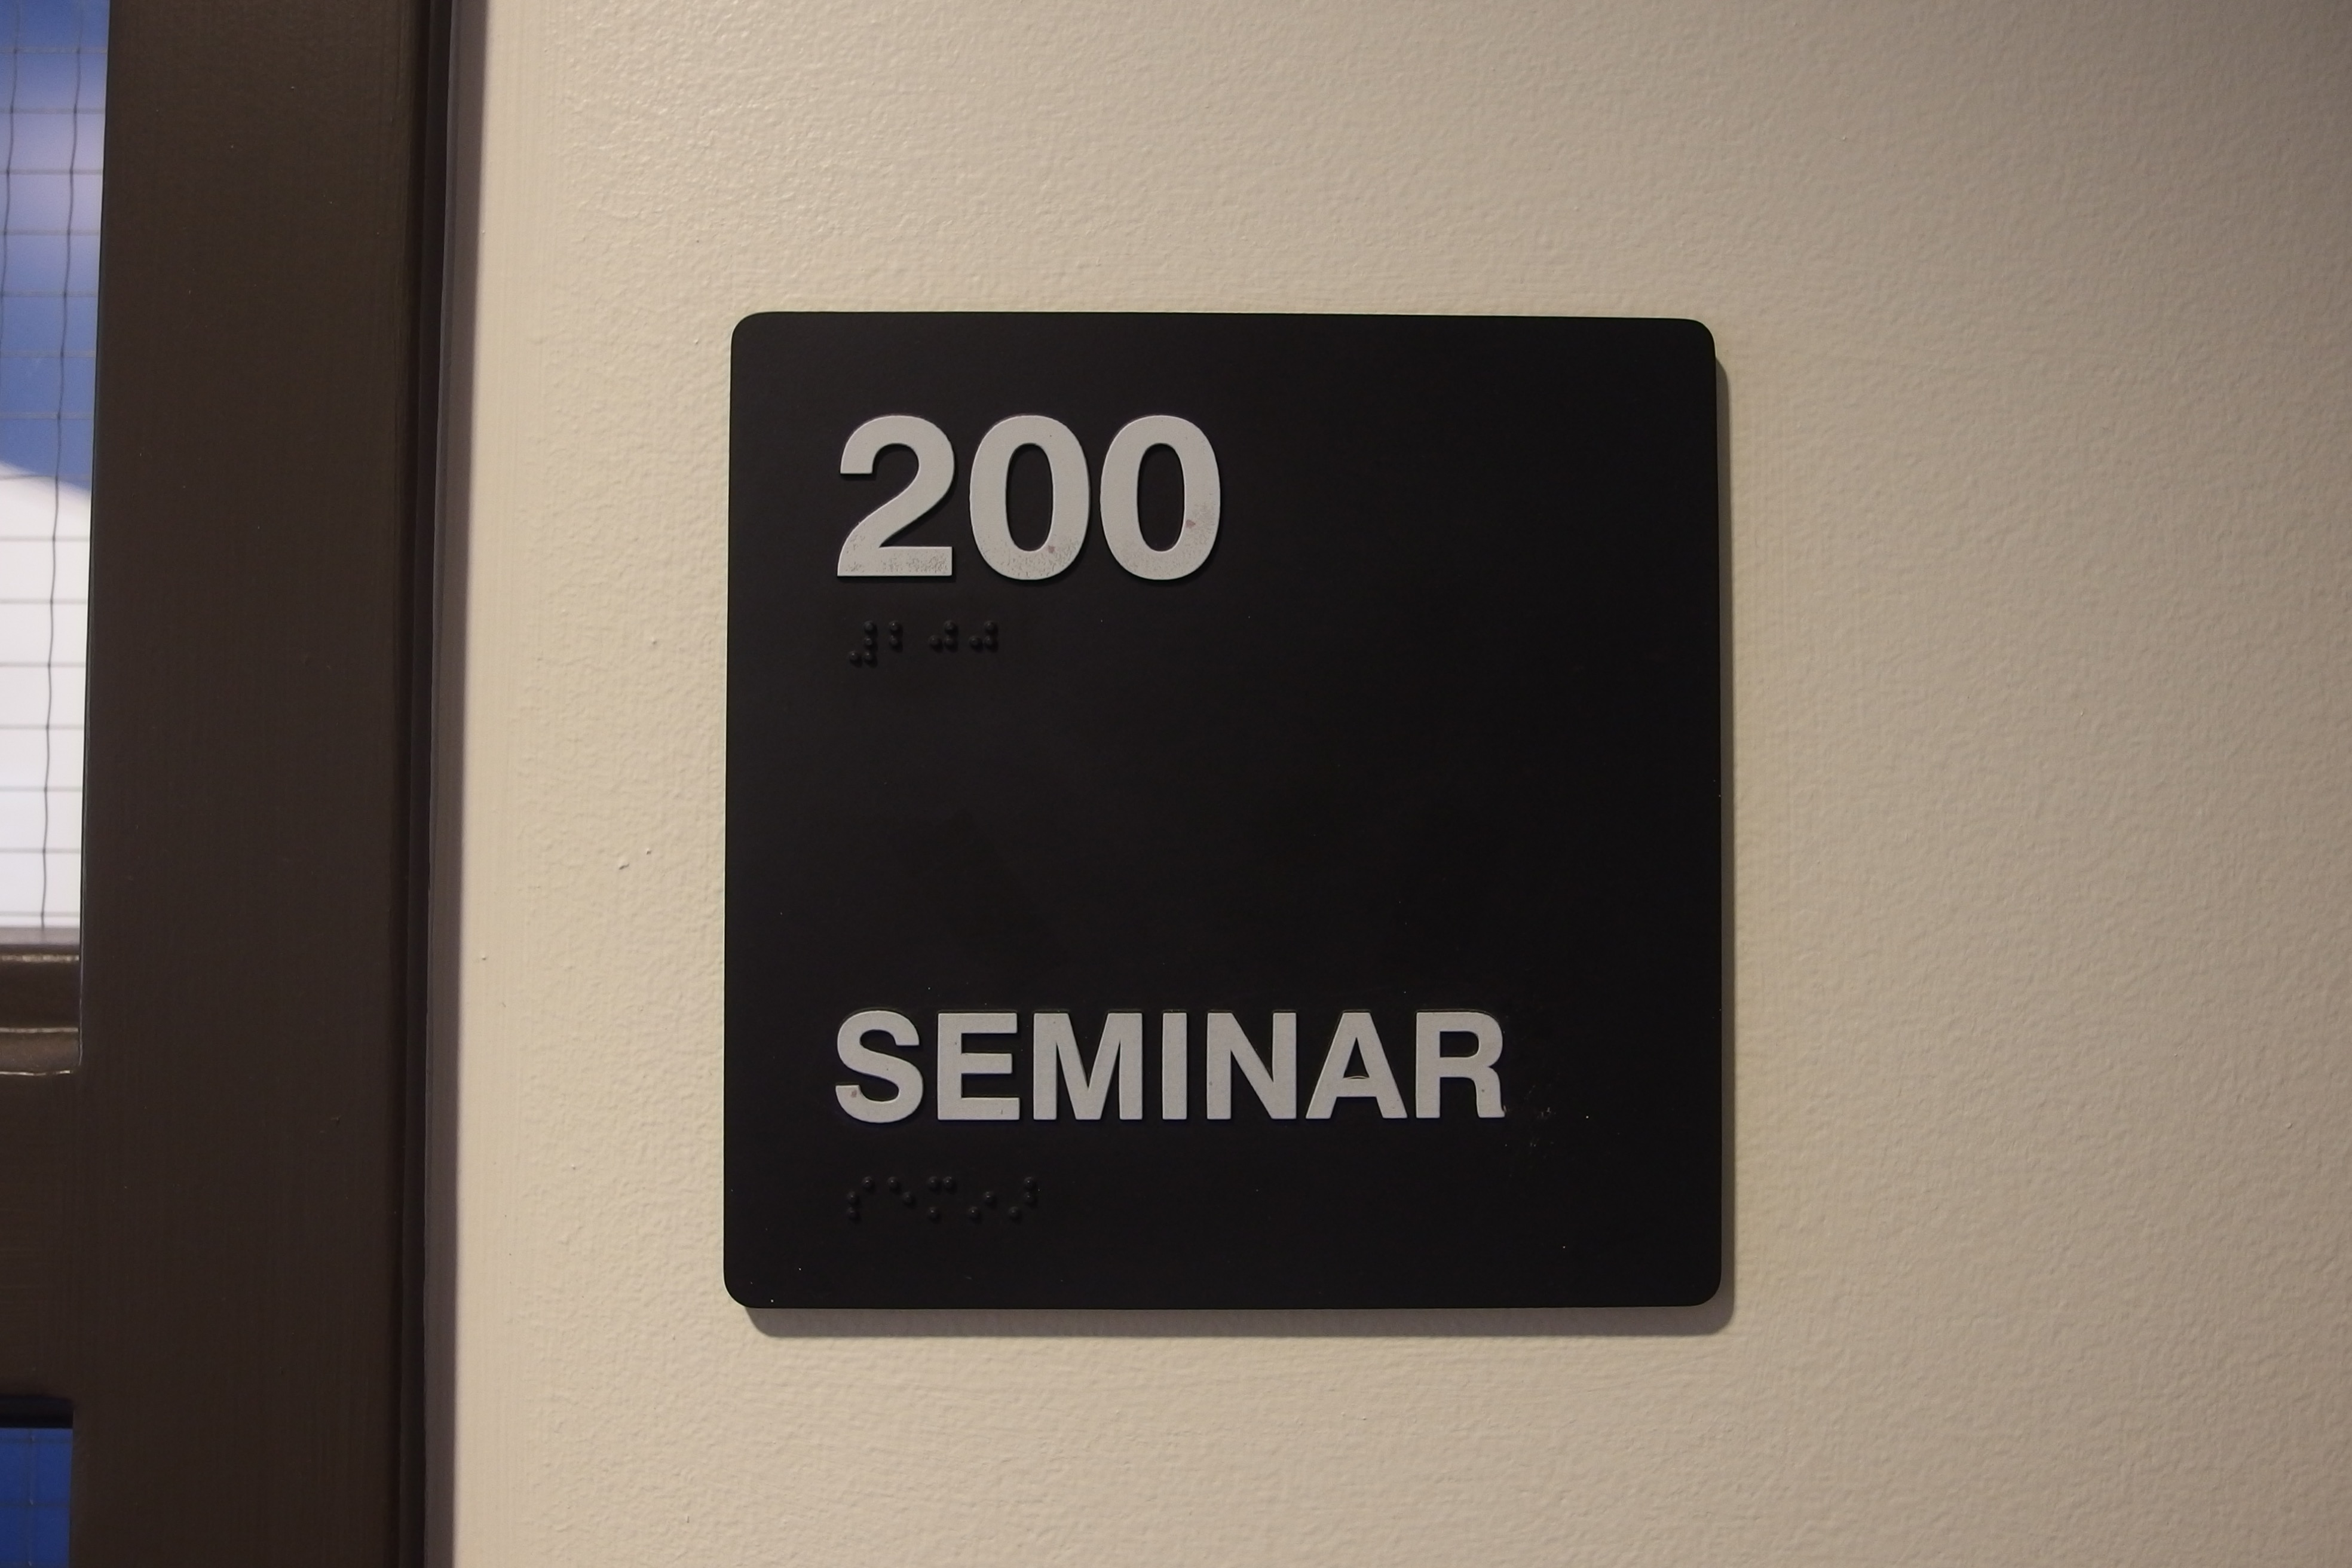 A photo of the sign of the room number.